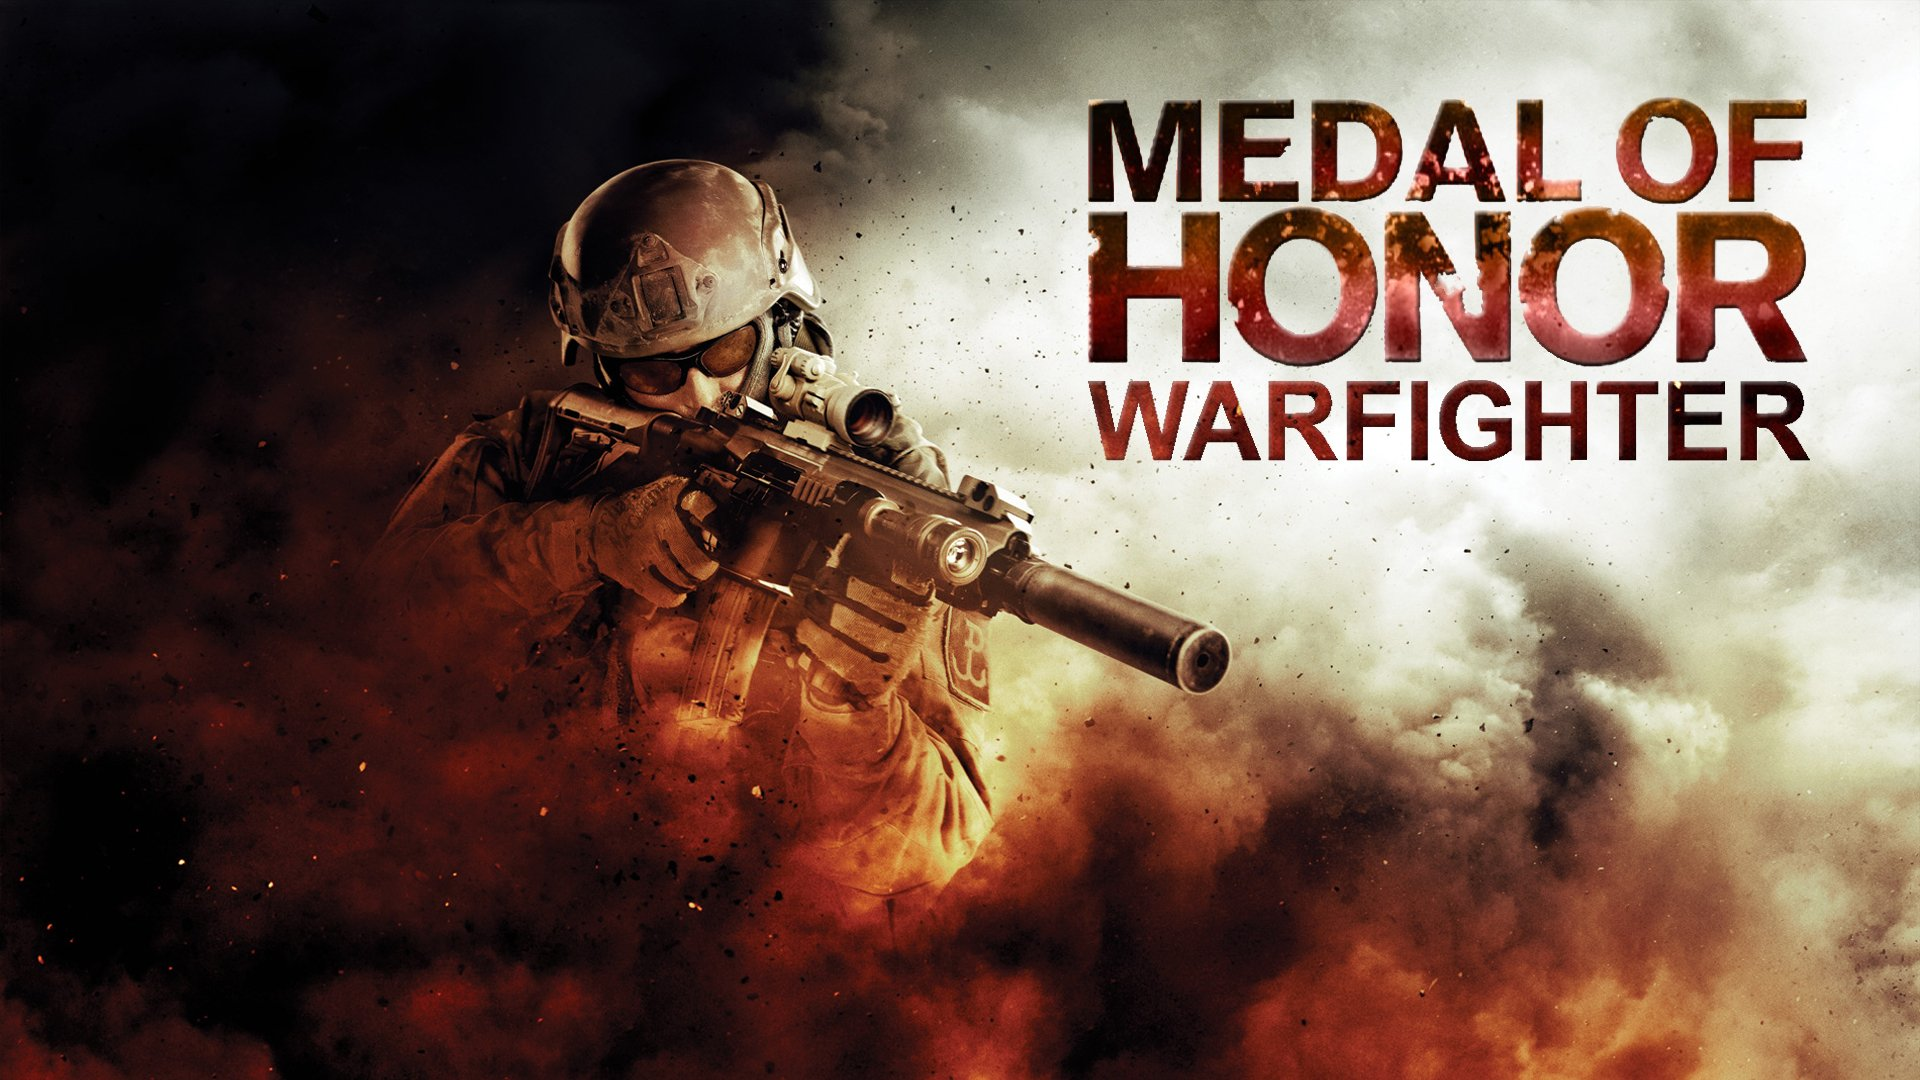 Medal of Honor Warfighter Video Game Wallpapers HD Wallpapers 1920x1080